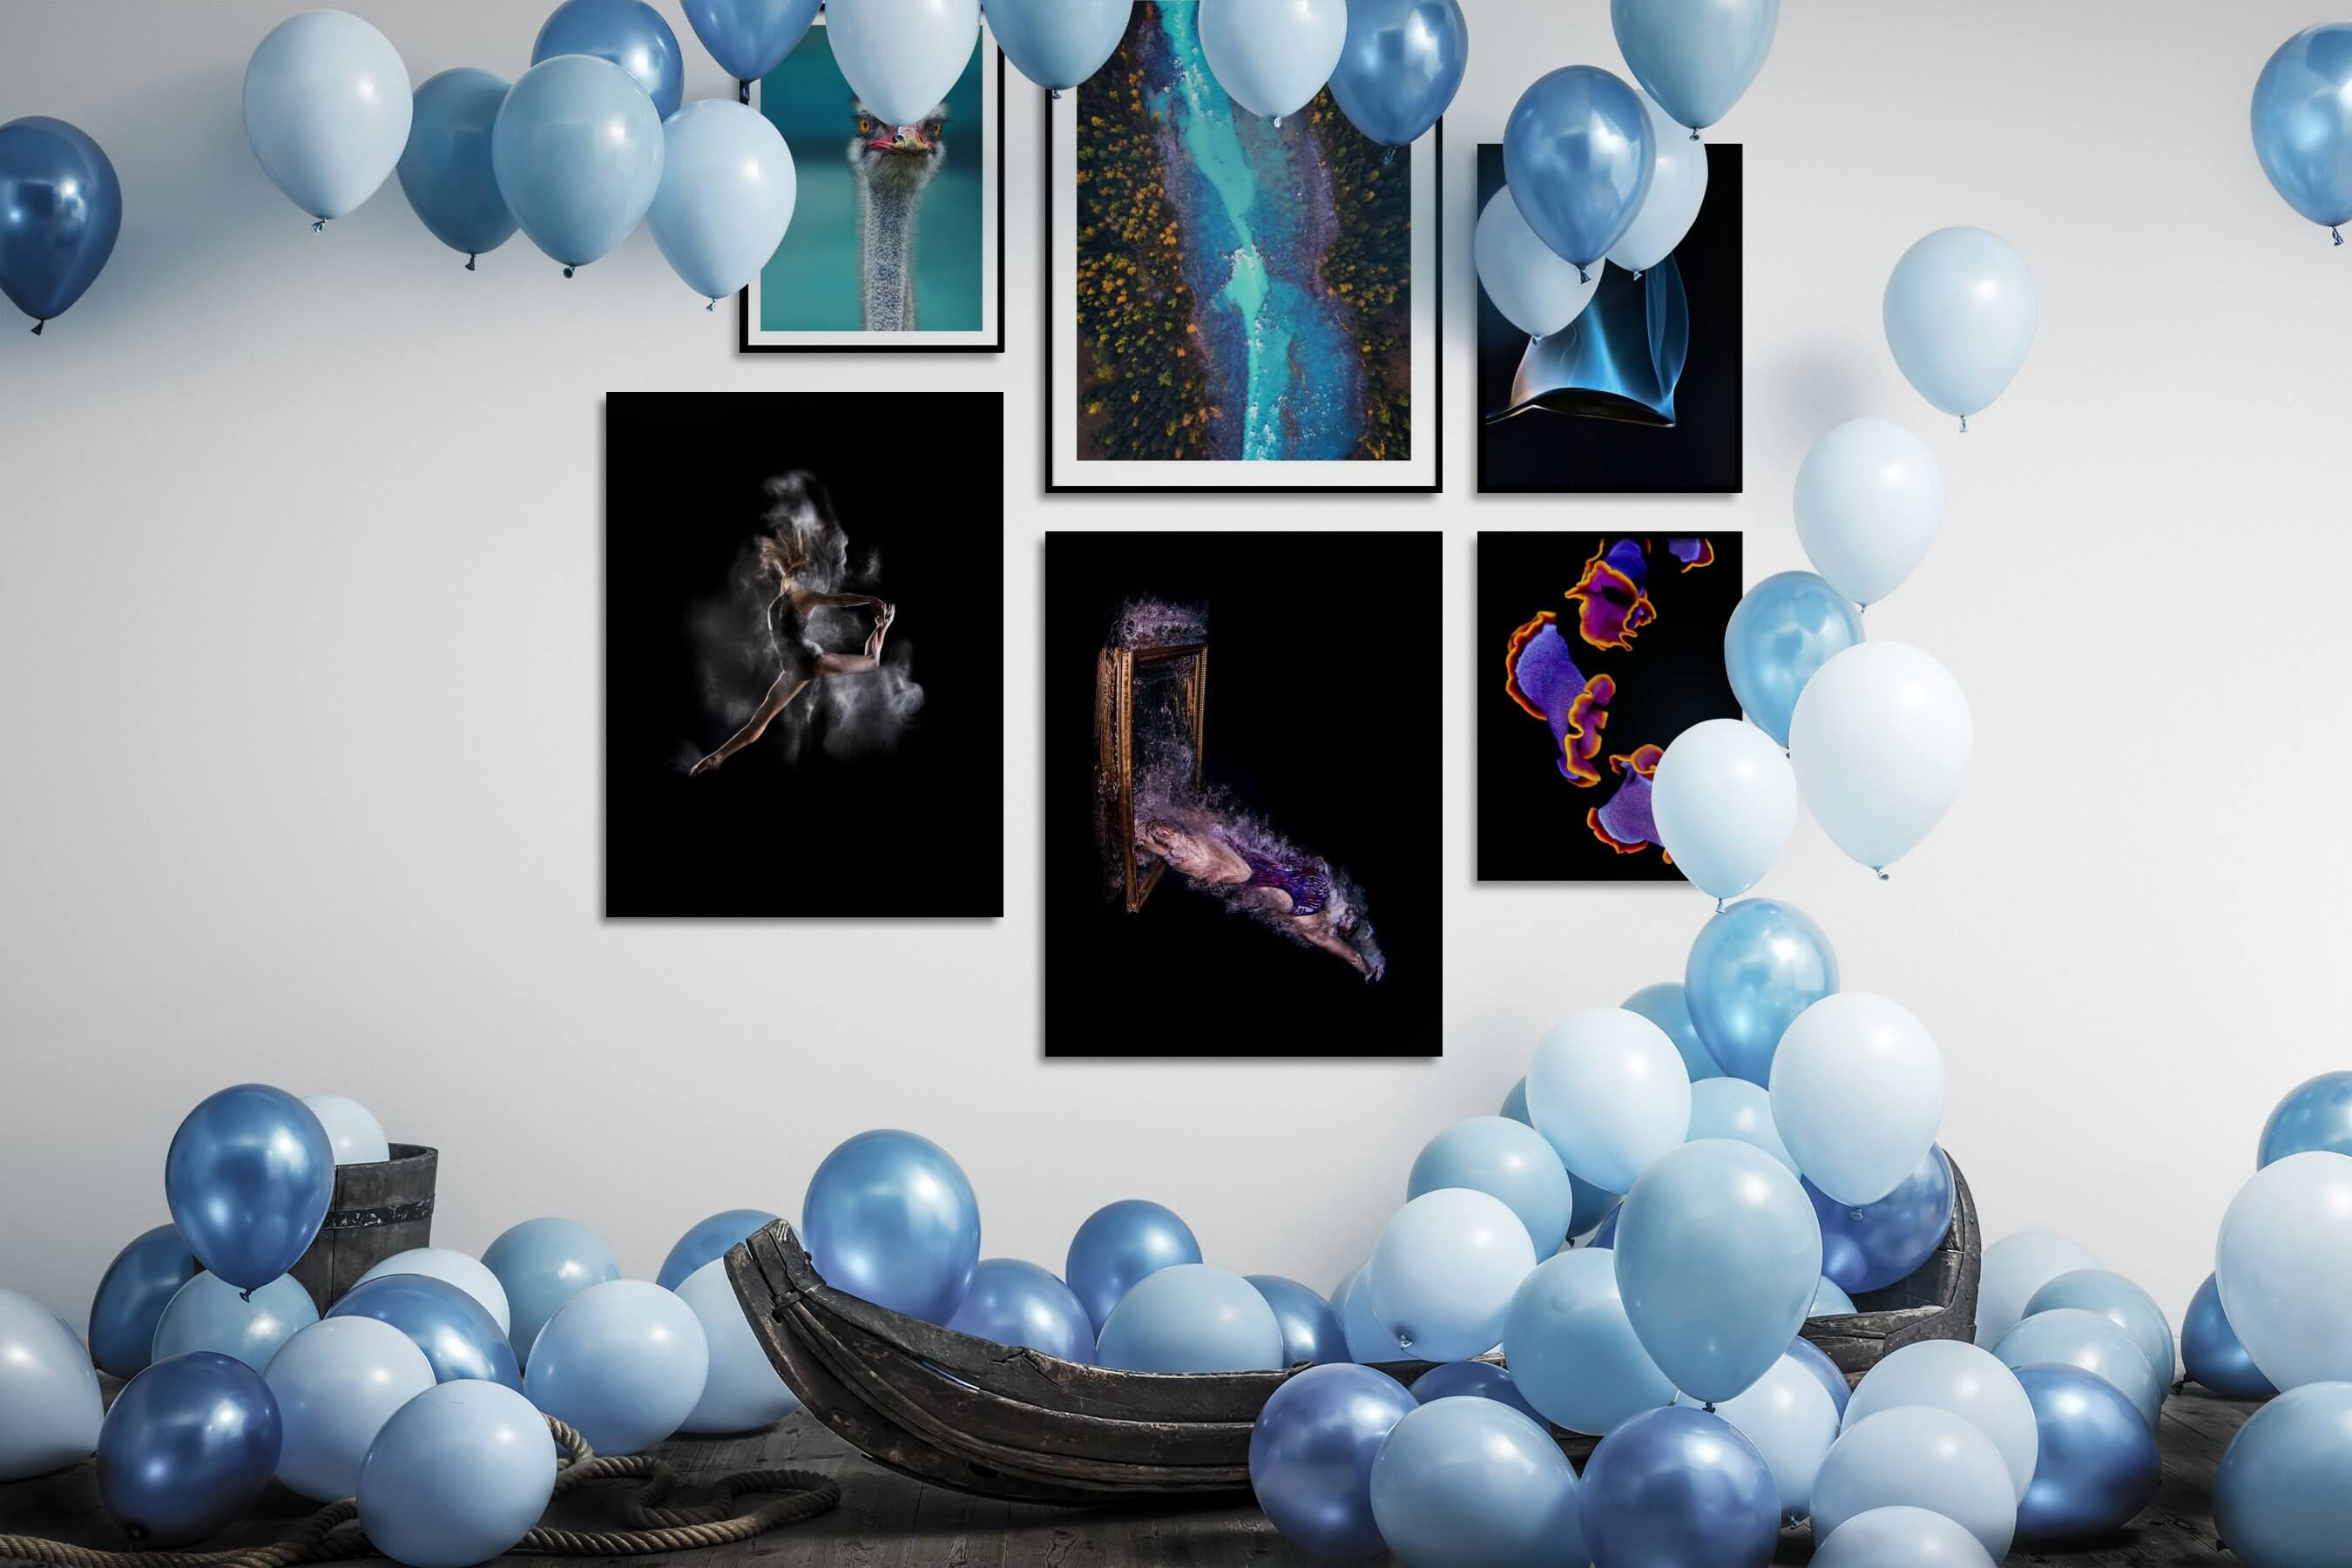 Gallery wall idea with six framed pictures arranged on a wall depicting For the Minimalist, Animals, For the Moderate, Nature, Fashion & Beauty, Dark Tones, Artsy, and Colorful